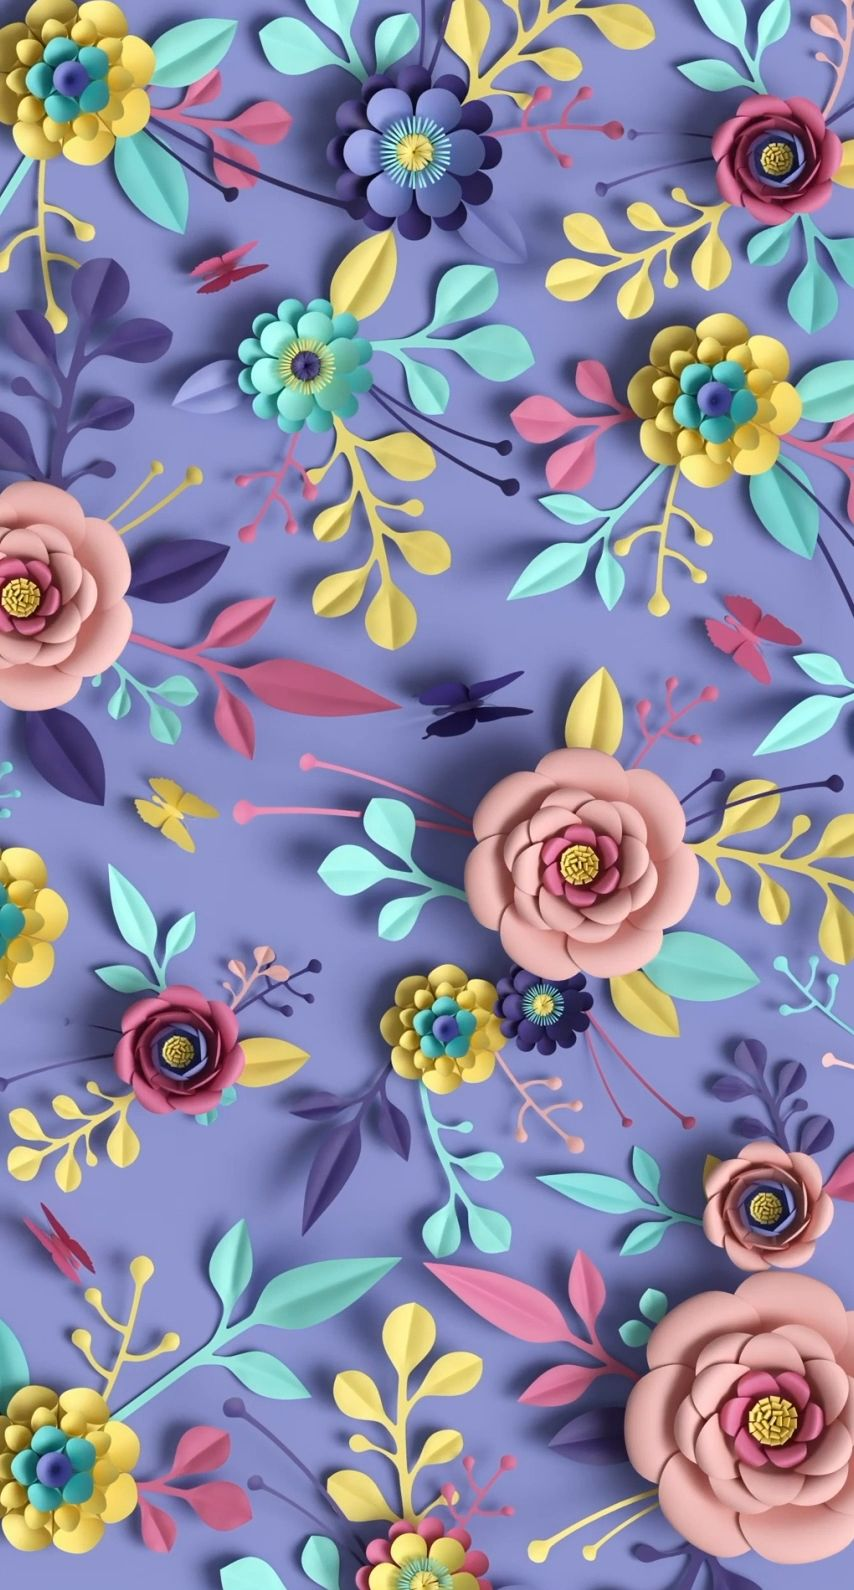 Flowers Live Wallpapers For Your Iphone Xs From Everpix Live